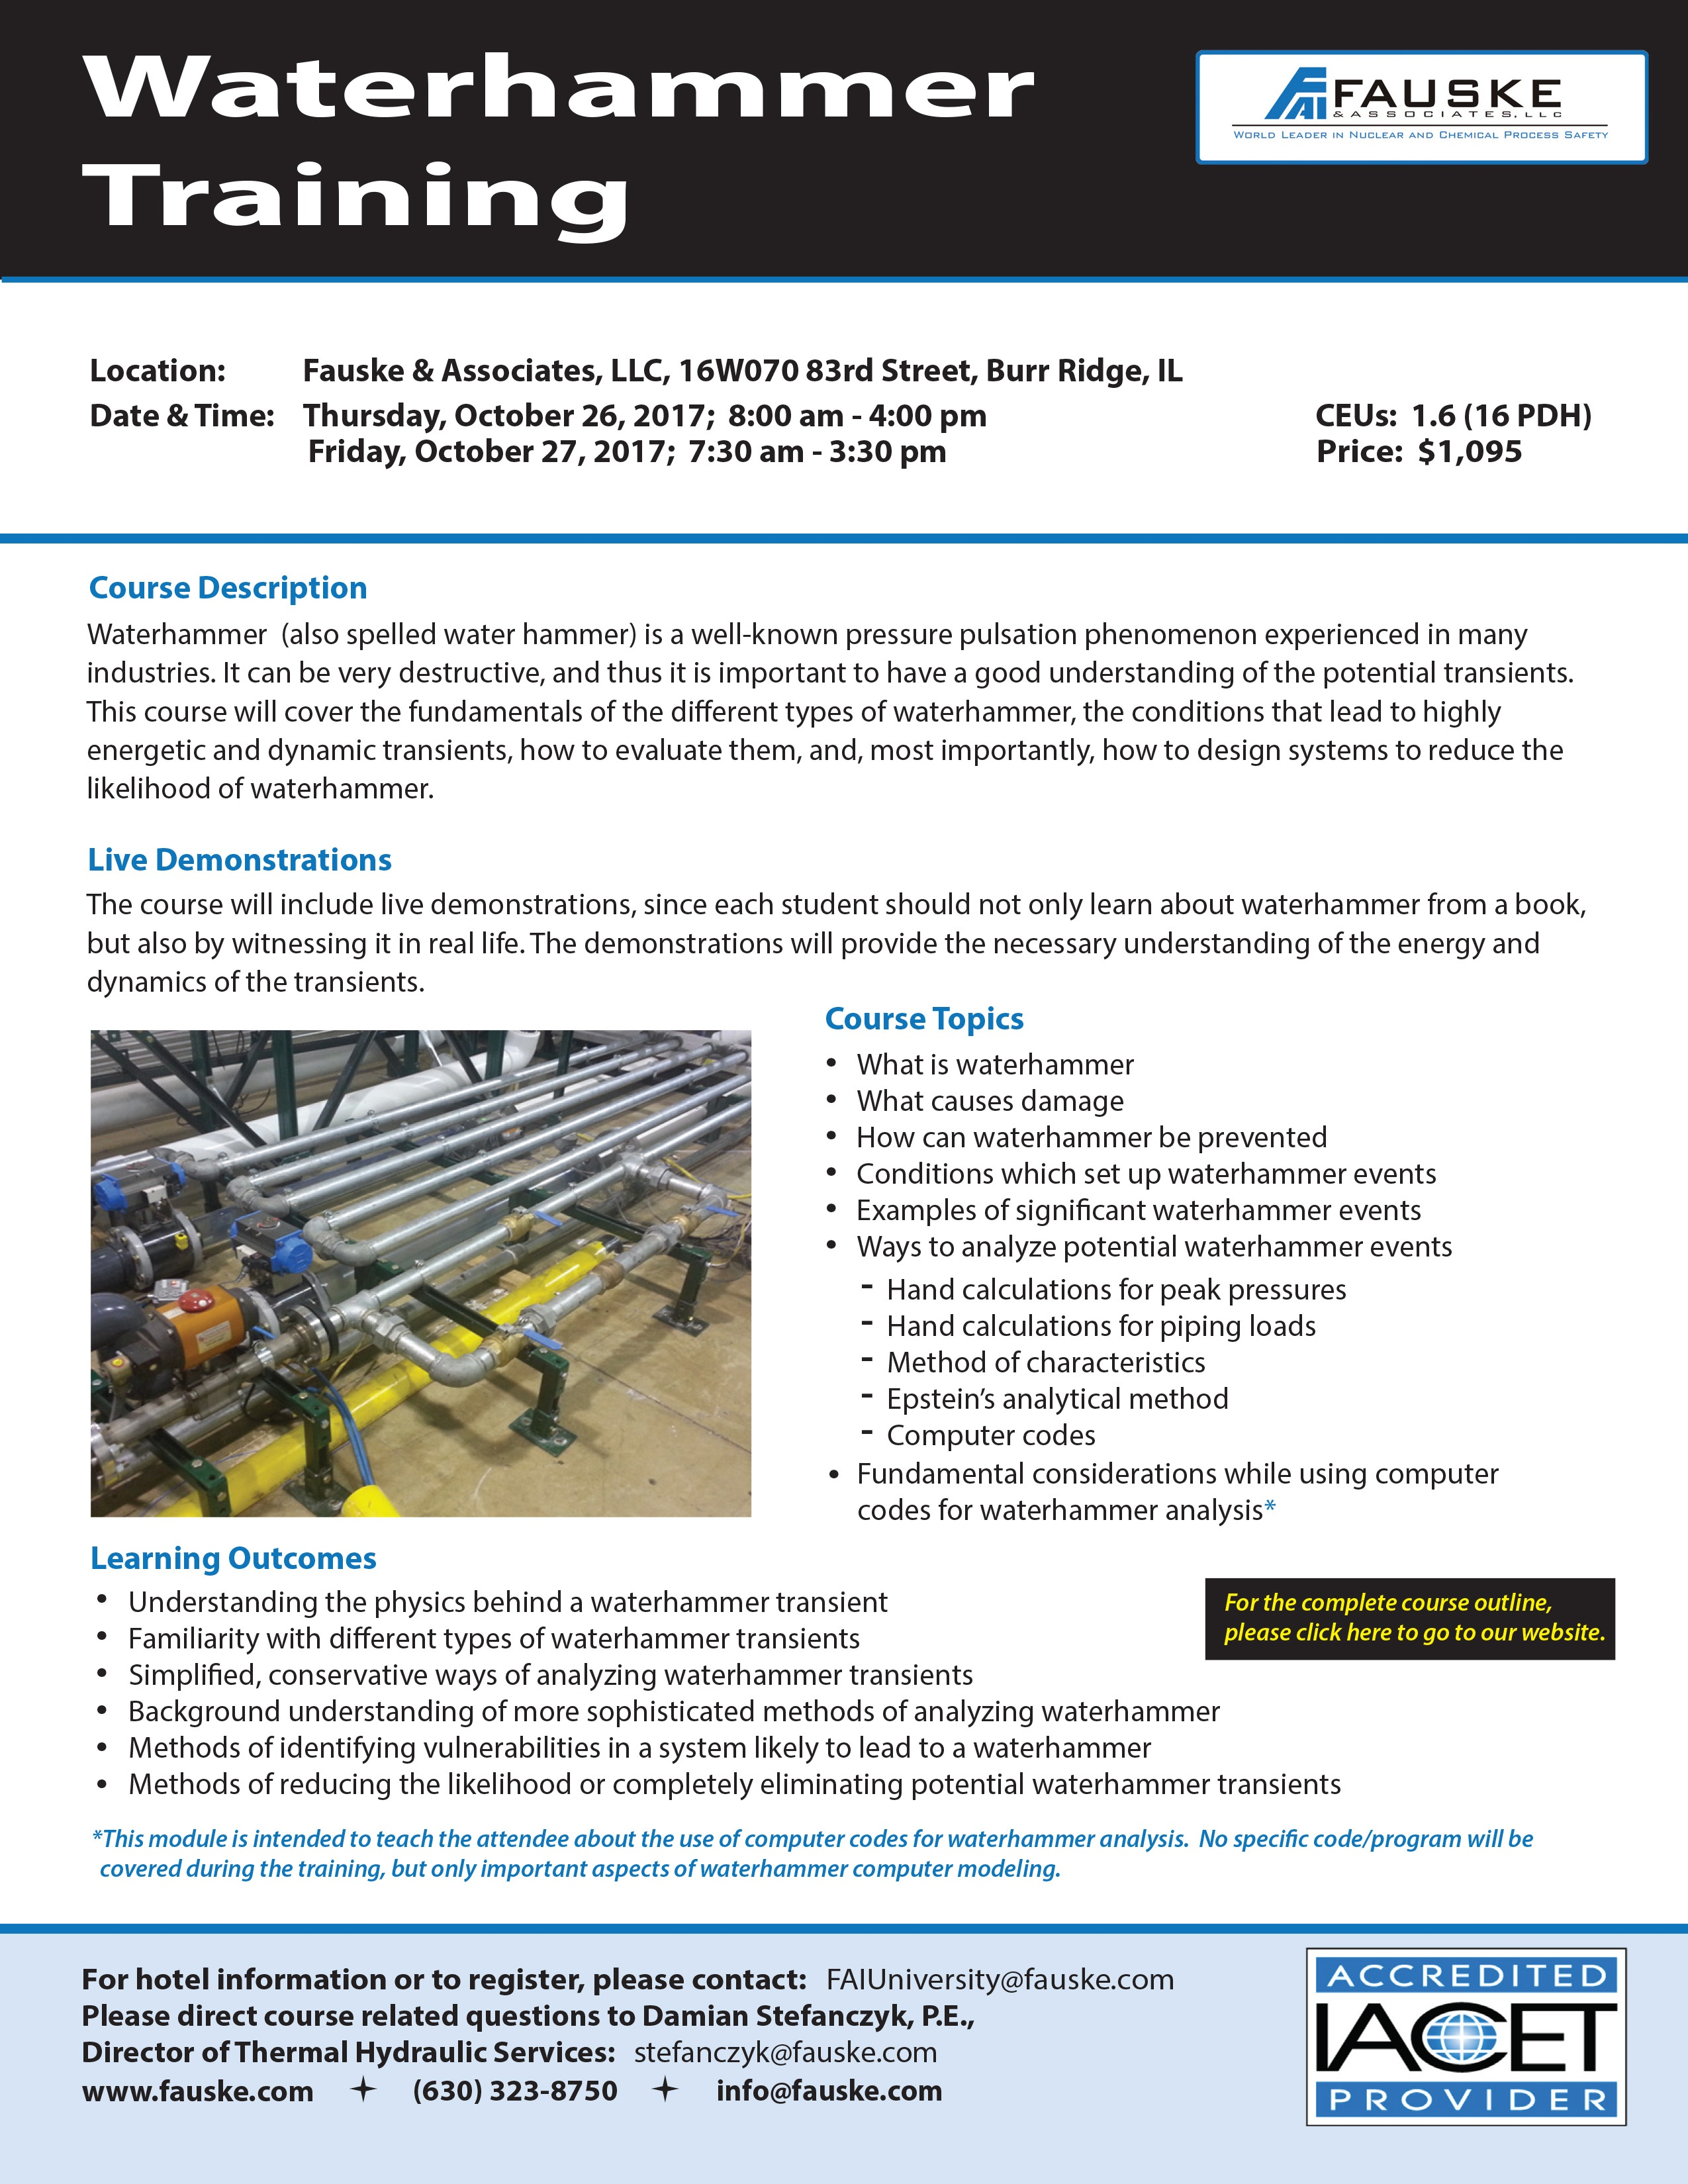 Waterhammer Training Course